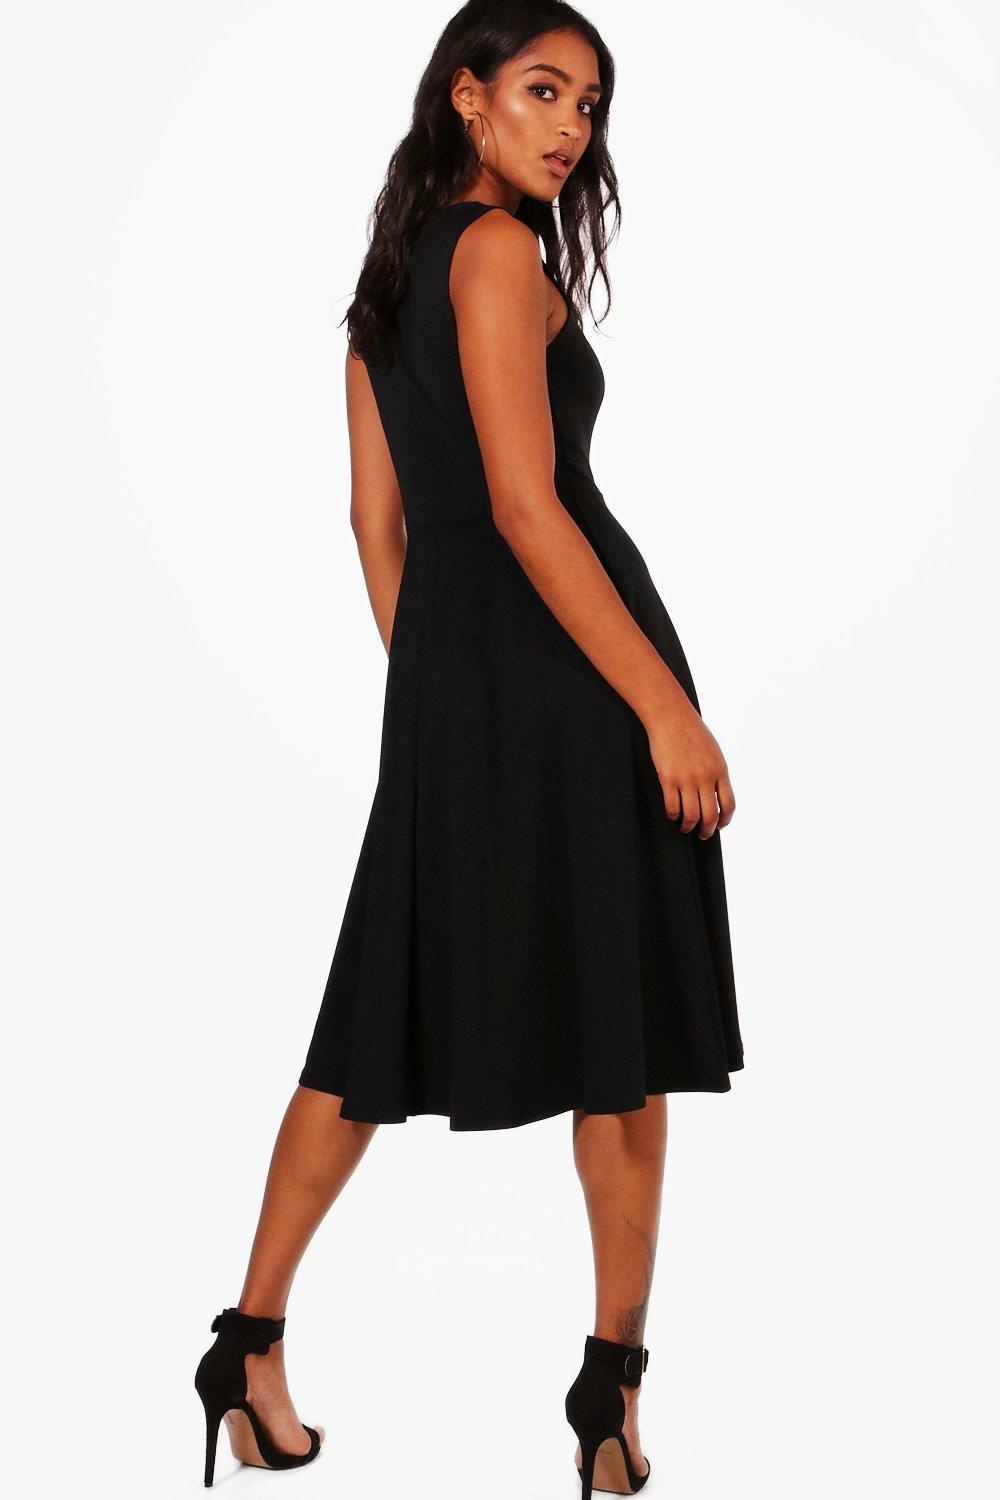 b0b0fe62142f6a Boohoo Womens Square Neck Midi Skater Dress